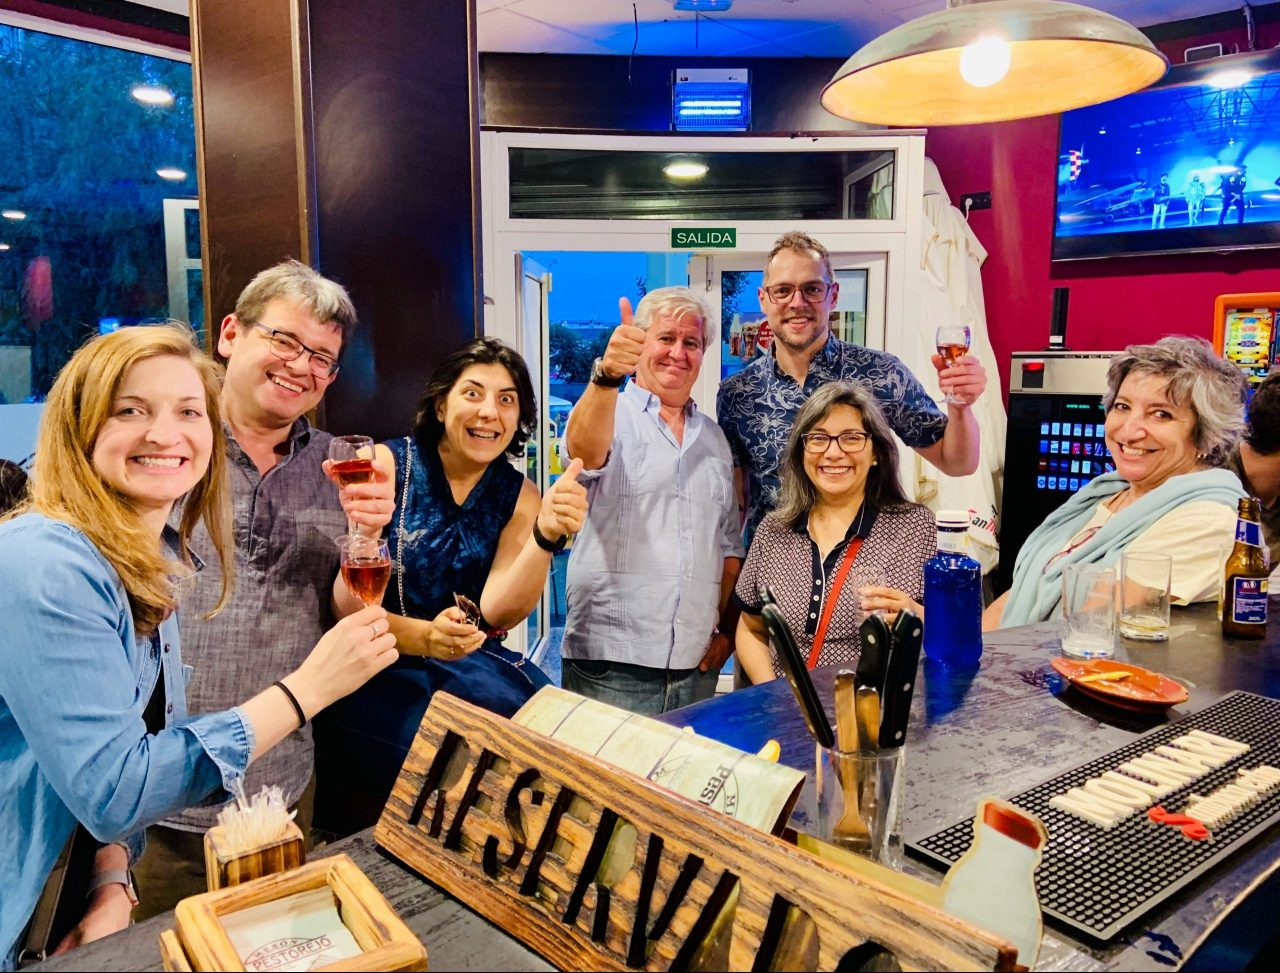 JSB with colleagues and adult students at a bar in Mérida, Spain